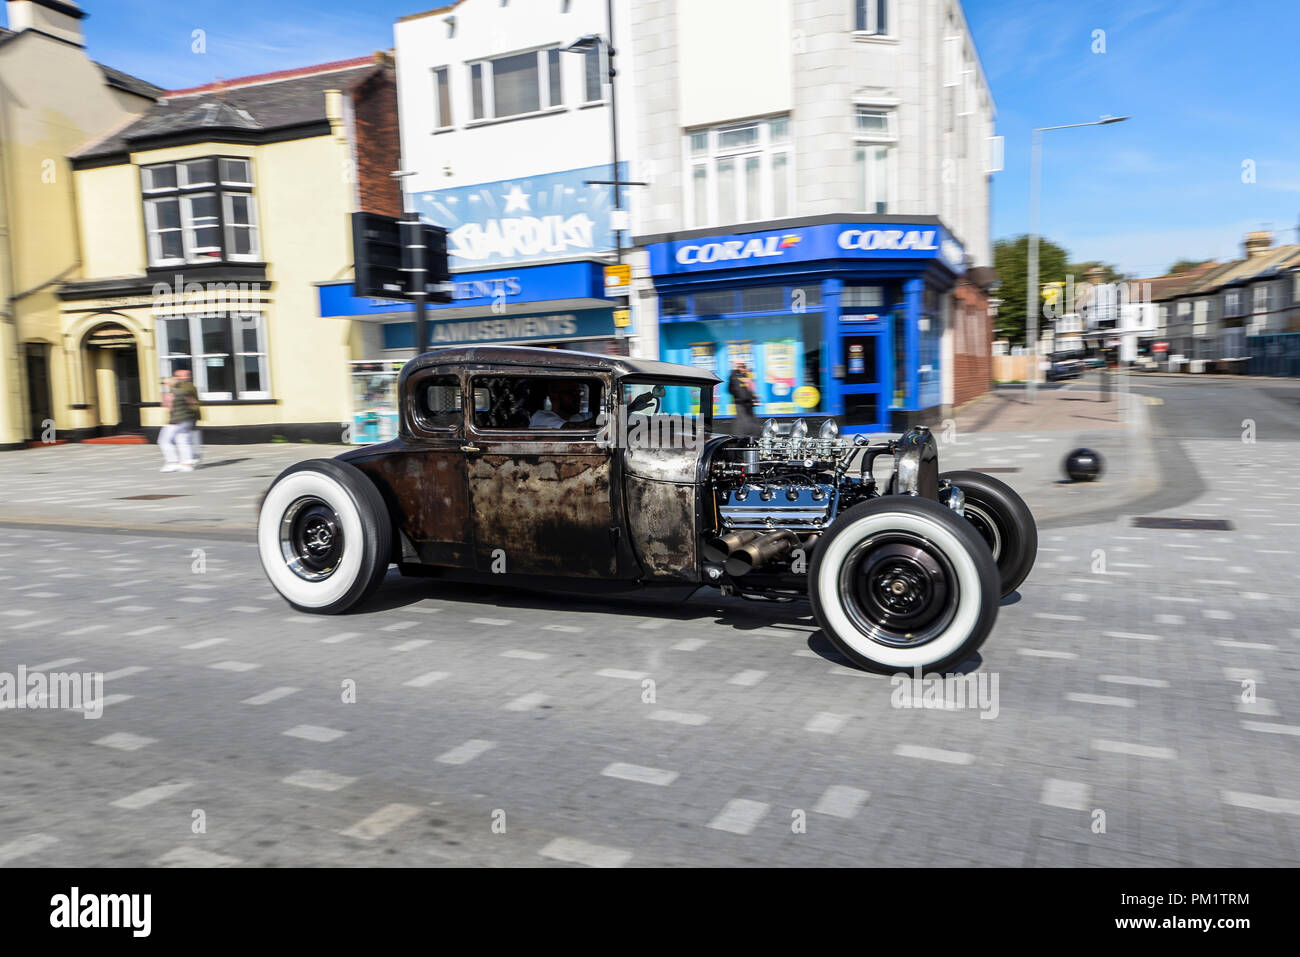 custom-car-hot-rod-coupe-driving-along-southend-on-sea-seafront-white-wall-tires-tyres-rusty-bare-metal-with-clear-coat-finish-PM1TRM.jpg